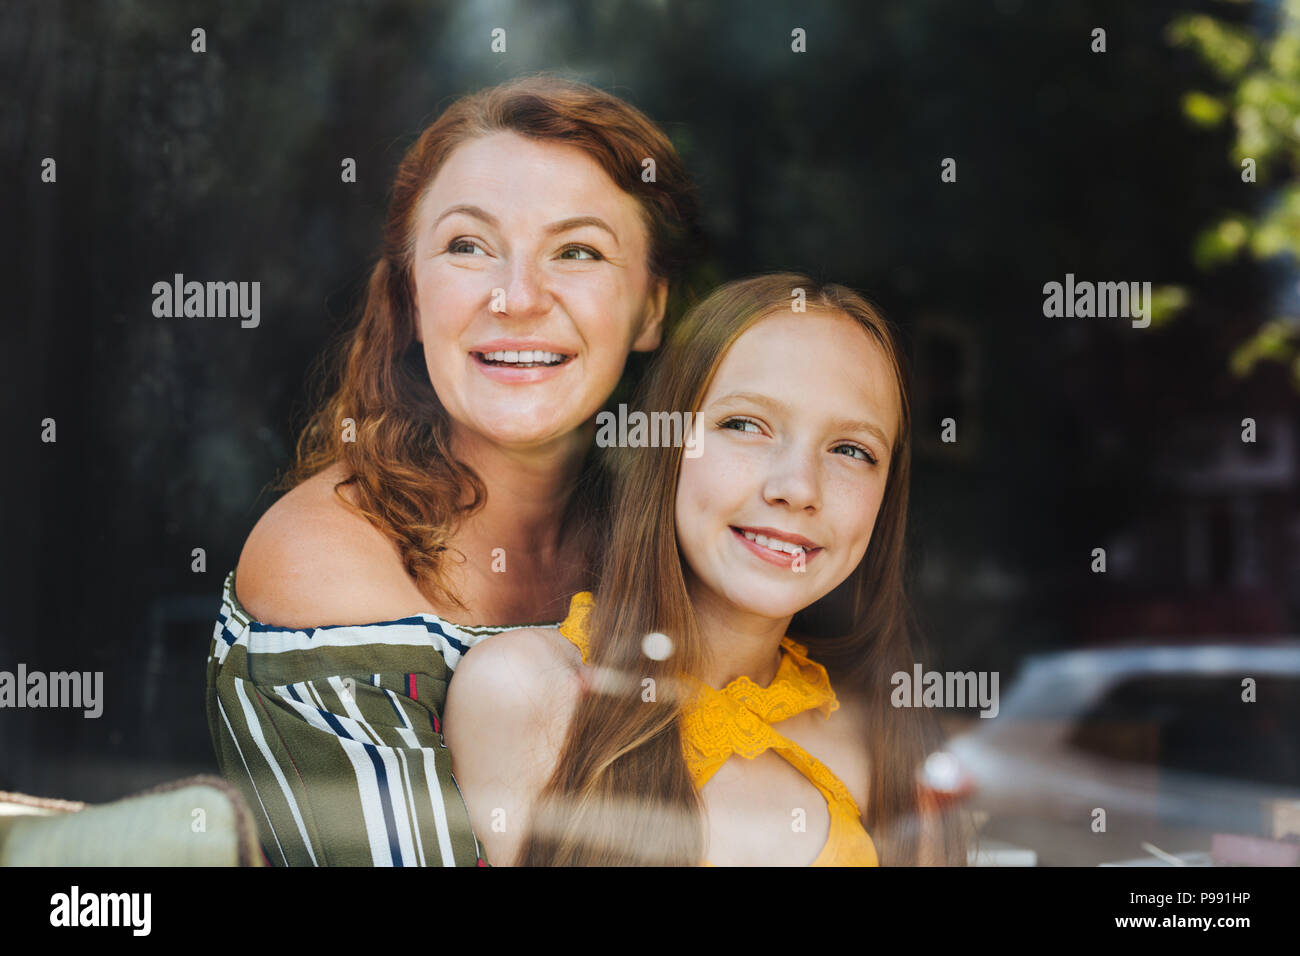 Blonde-haired schoolgirl spending her day with mother - Stock Image